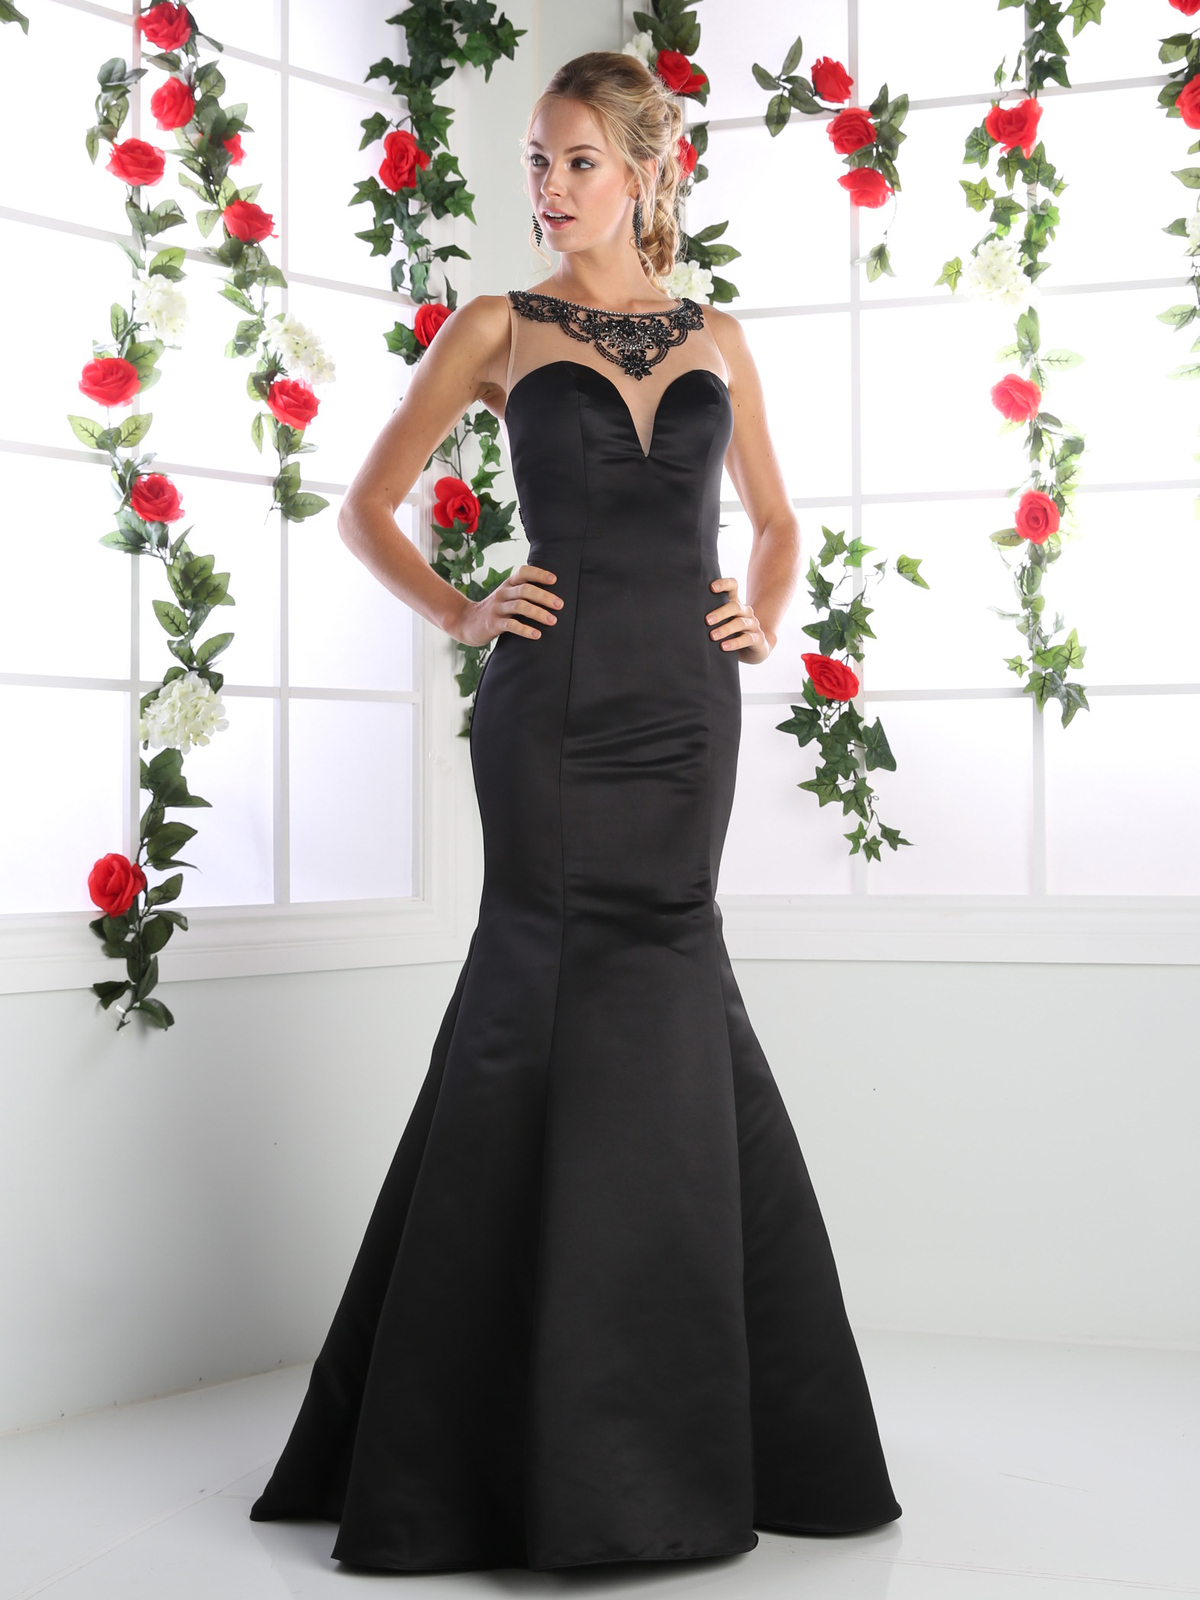 Cd Ck62 Illusion Mermaid Prom Evening Gown With Sheer Back Black Front View